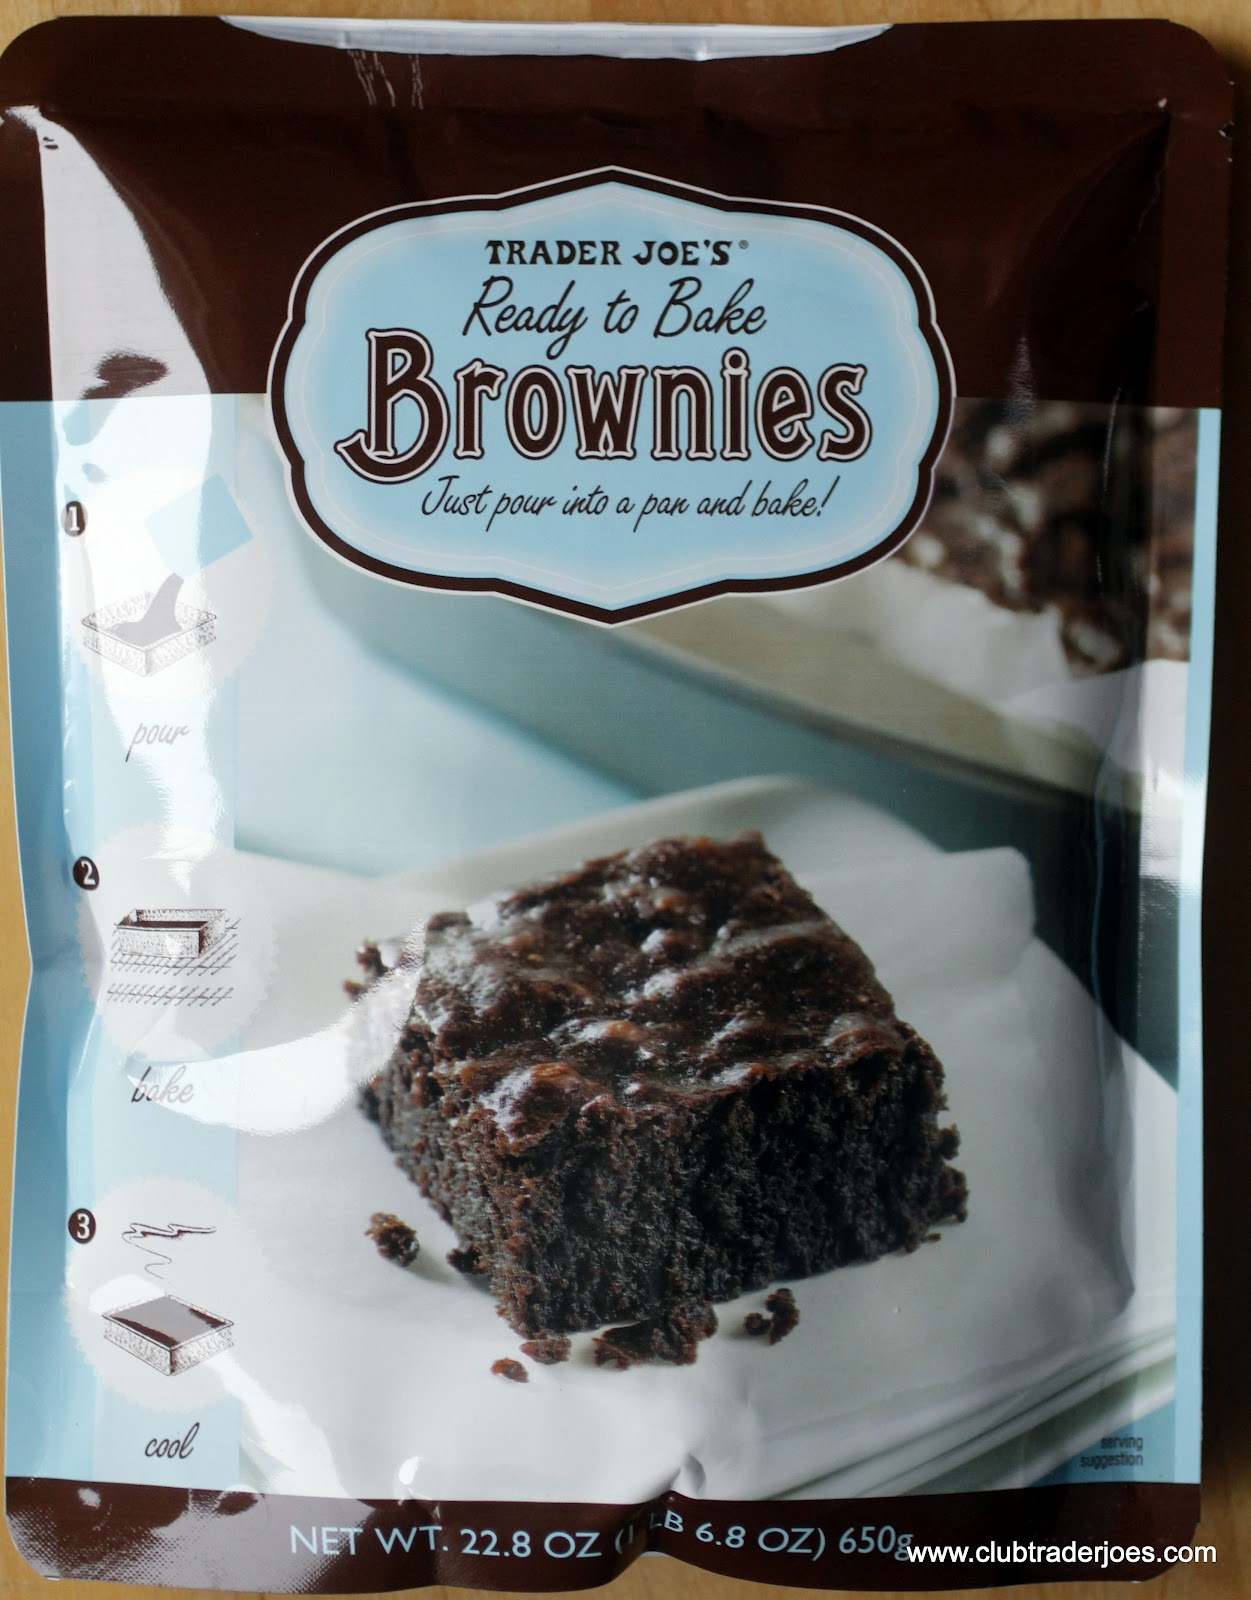 How To Make A Book Cover With A Trader Joe S Bag : Trader joe s ready to bake brownies club